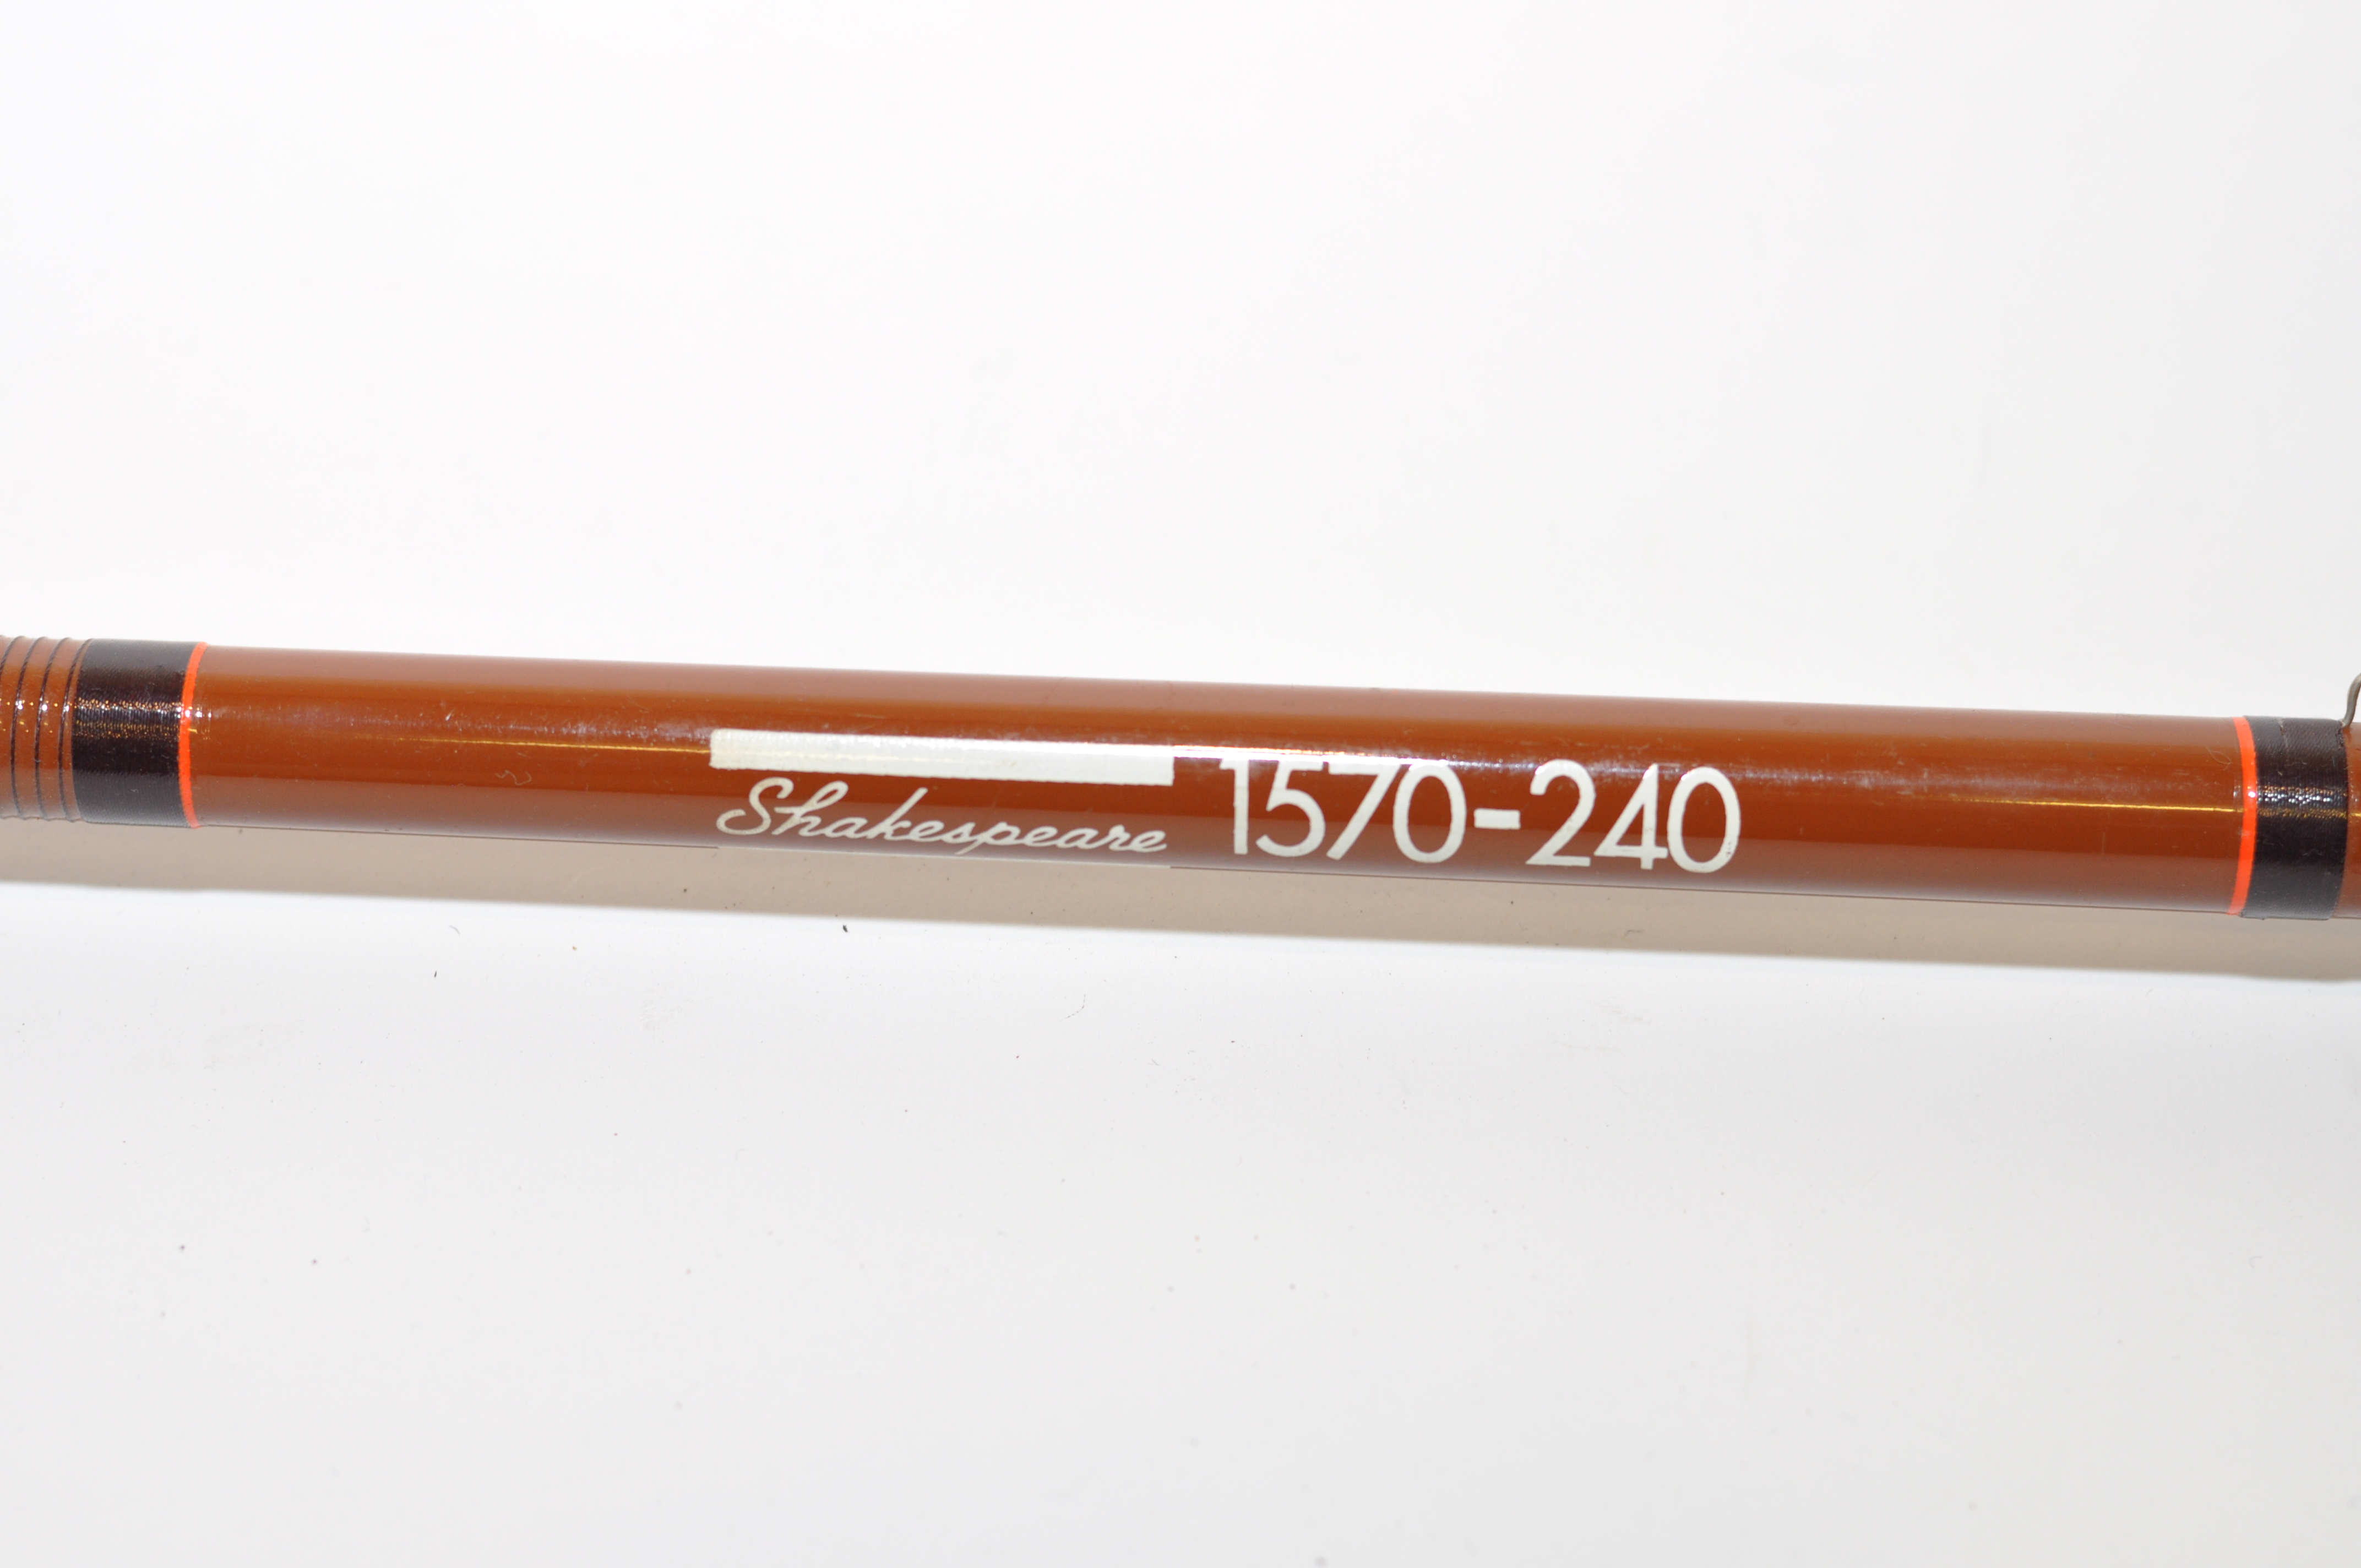 Lot 35 - SHAKESPEARE 1570-240 FISHING ROD AND BAG